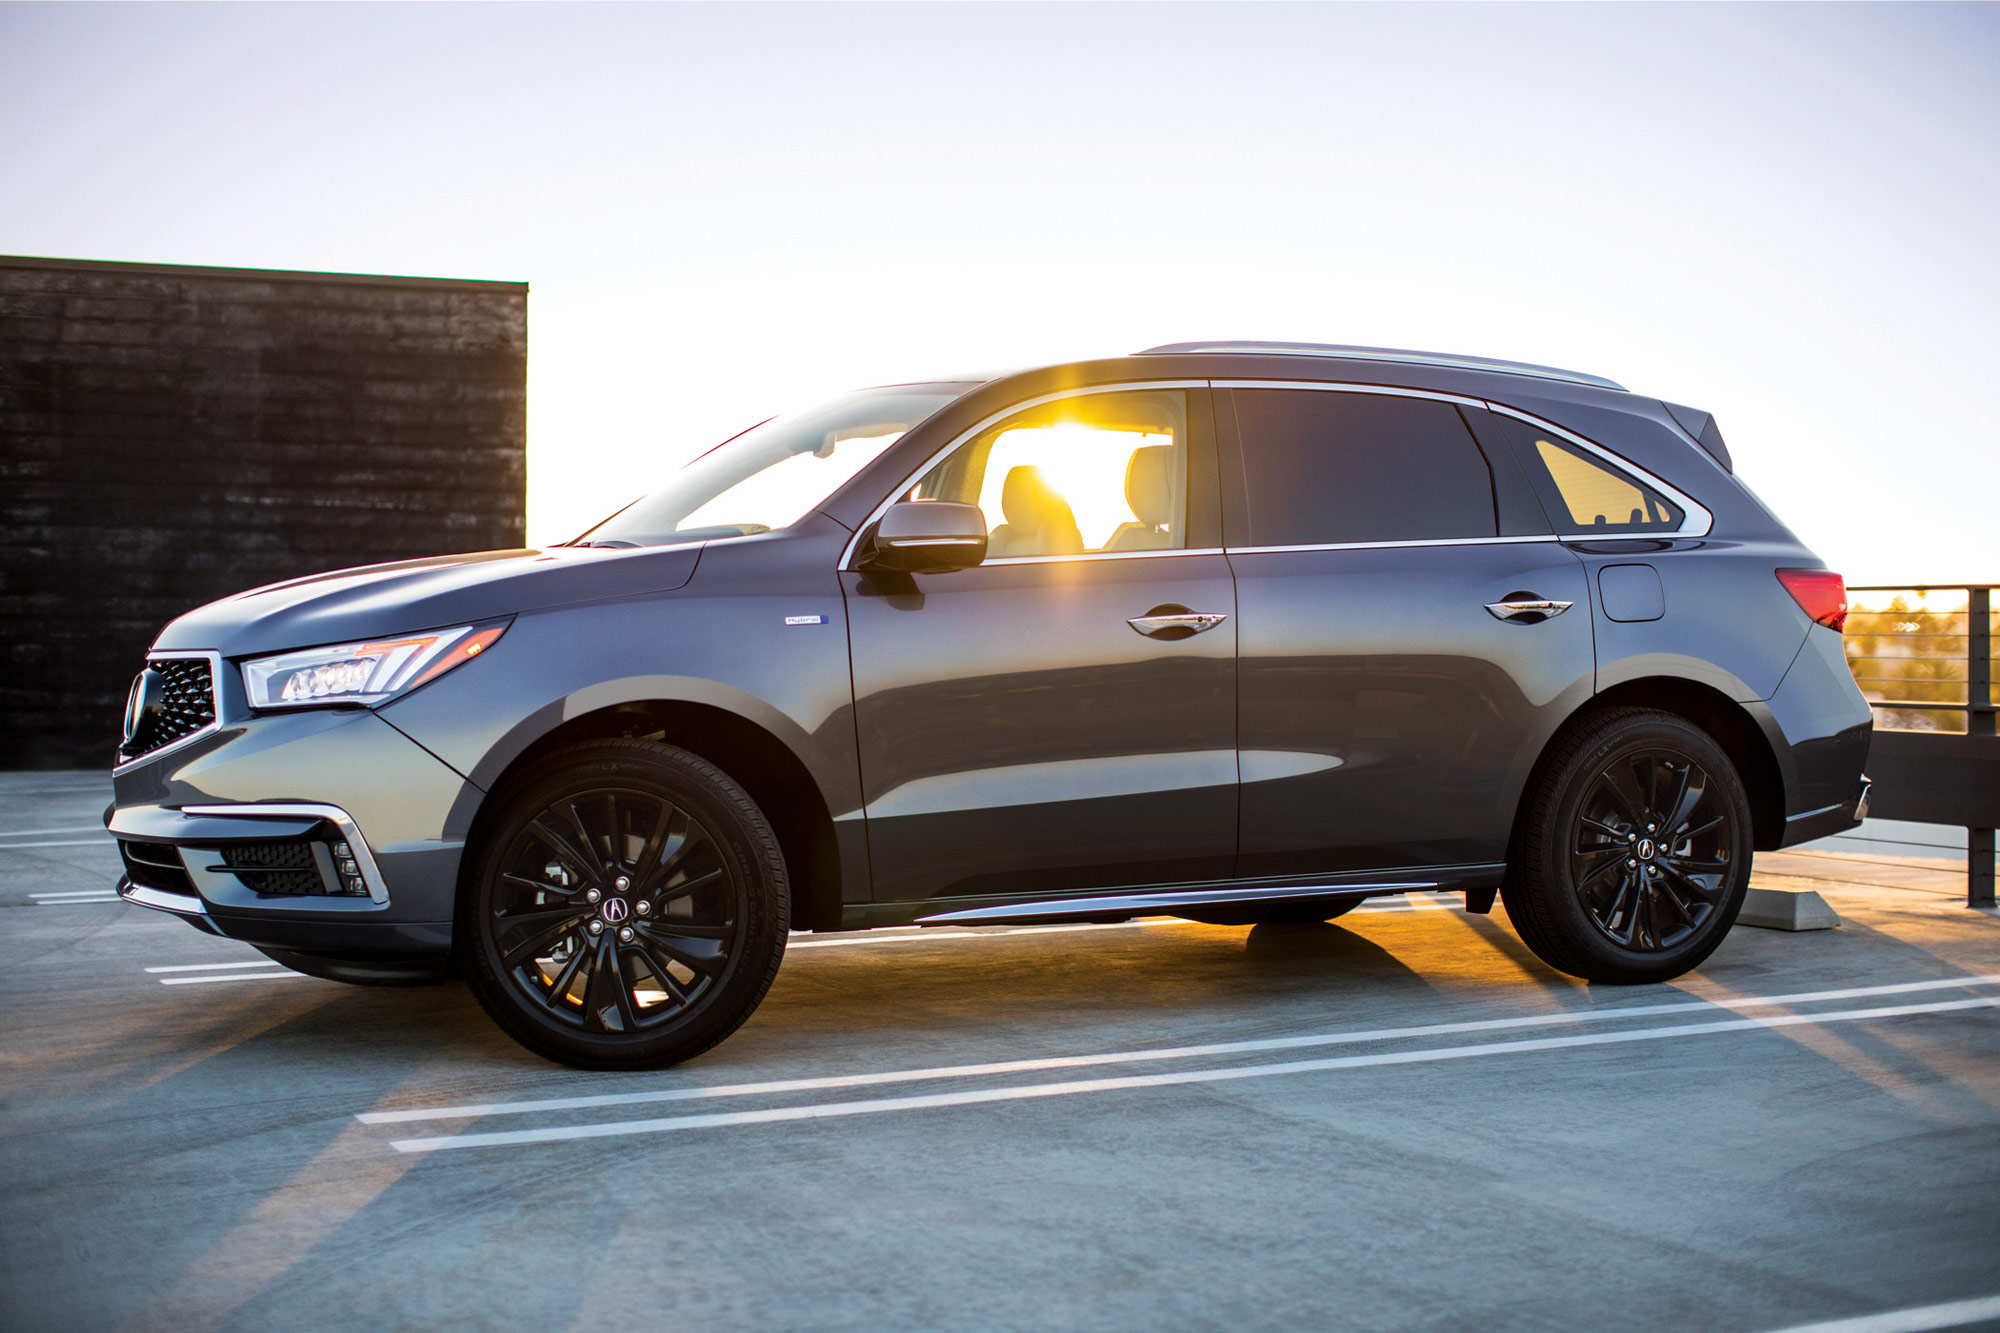 lou-mora-automotive-lifestyle-acura-mdx-006.jpg